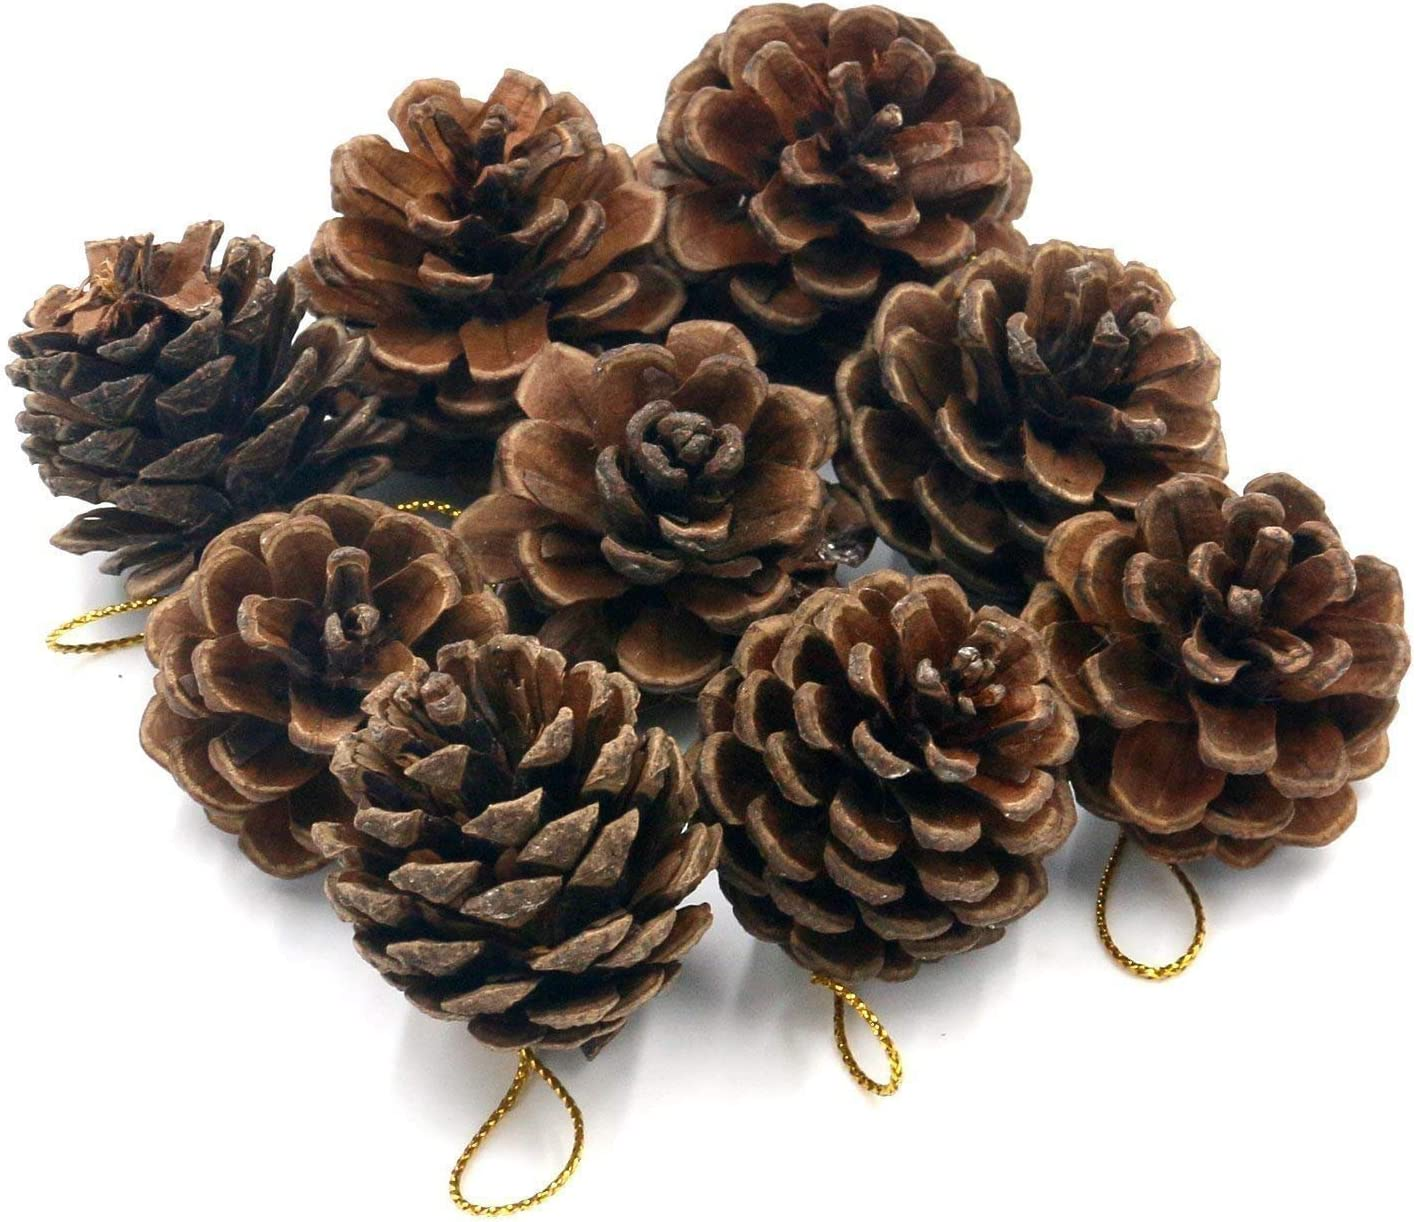 10Pcs Large Natural Dried Pine Cones Crafts For Home Hanging Decoration A